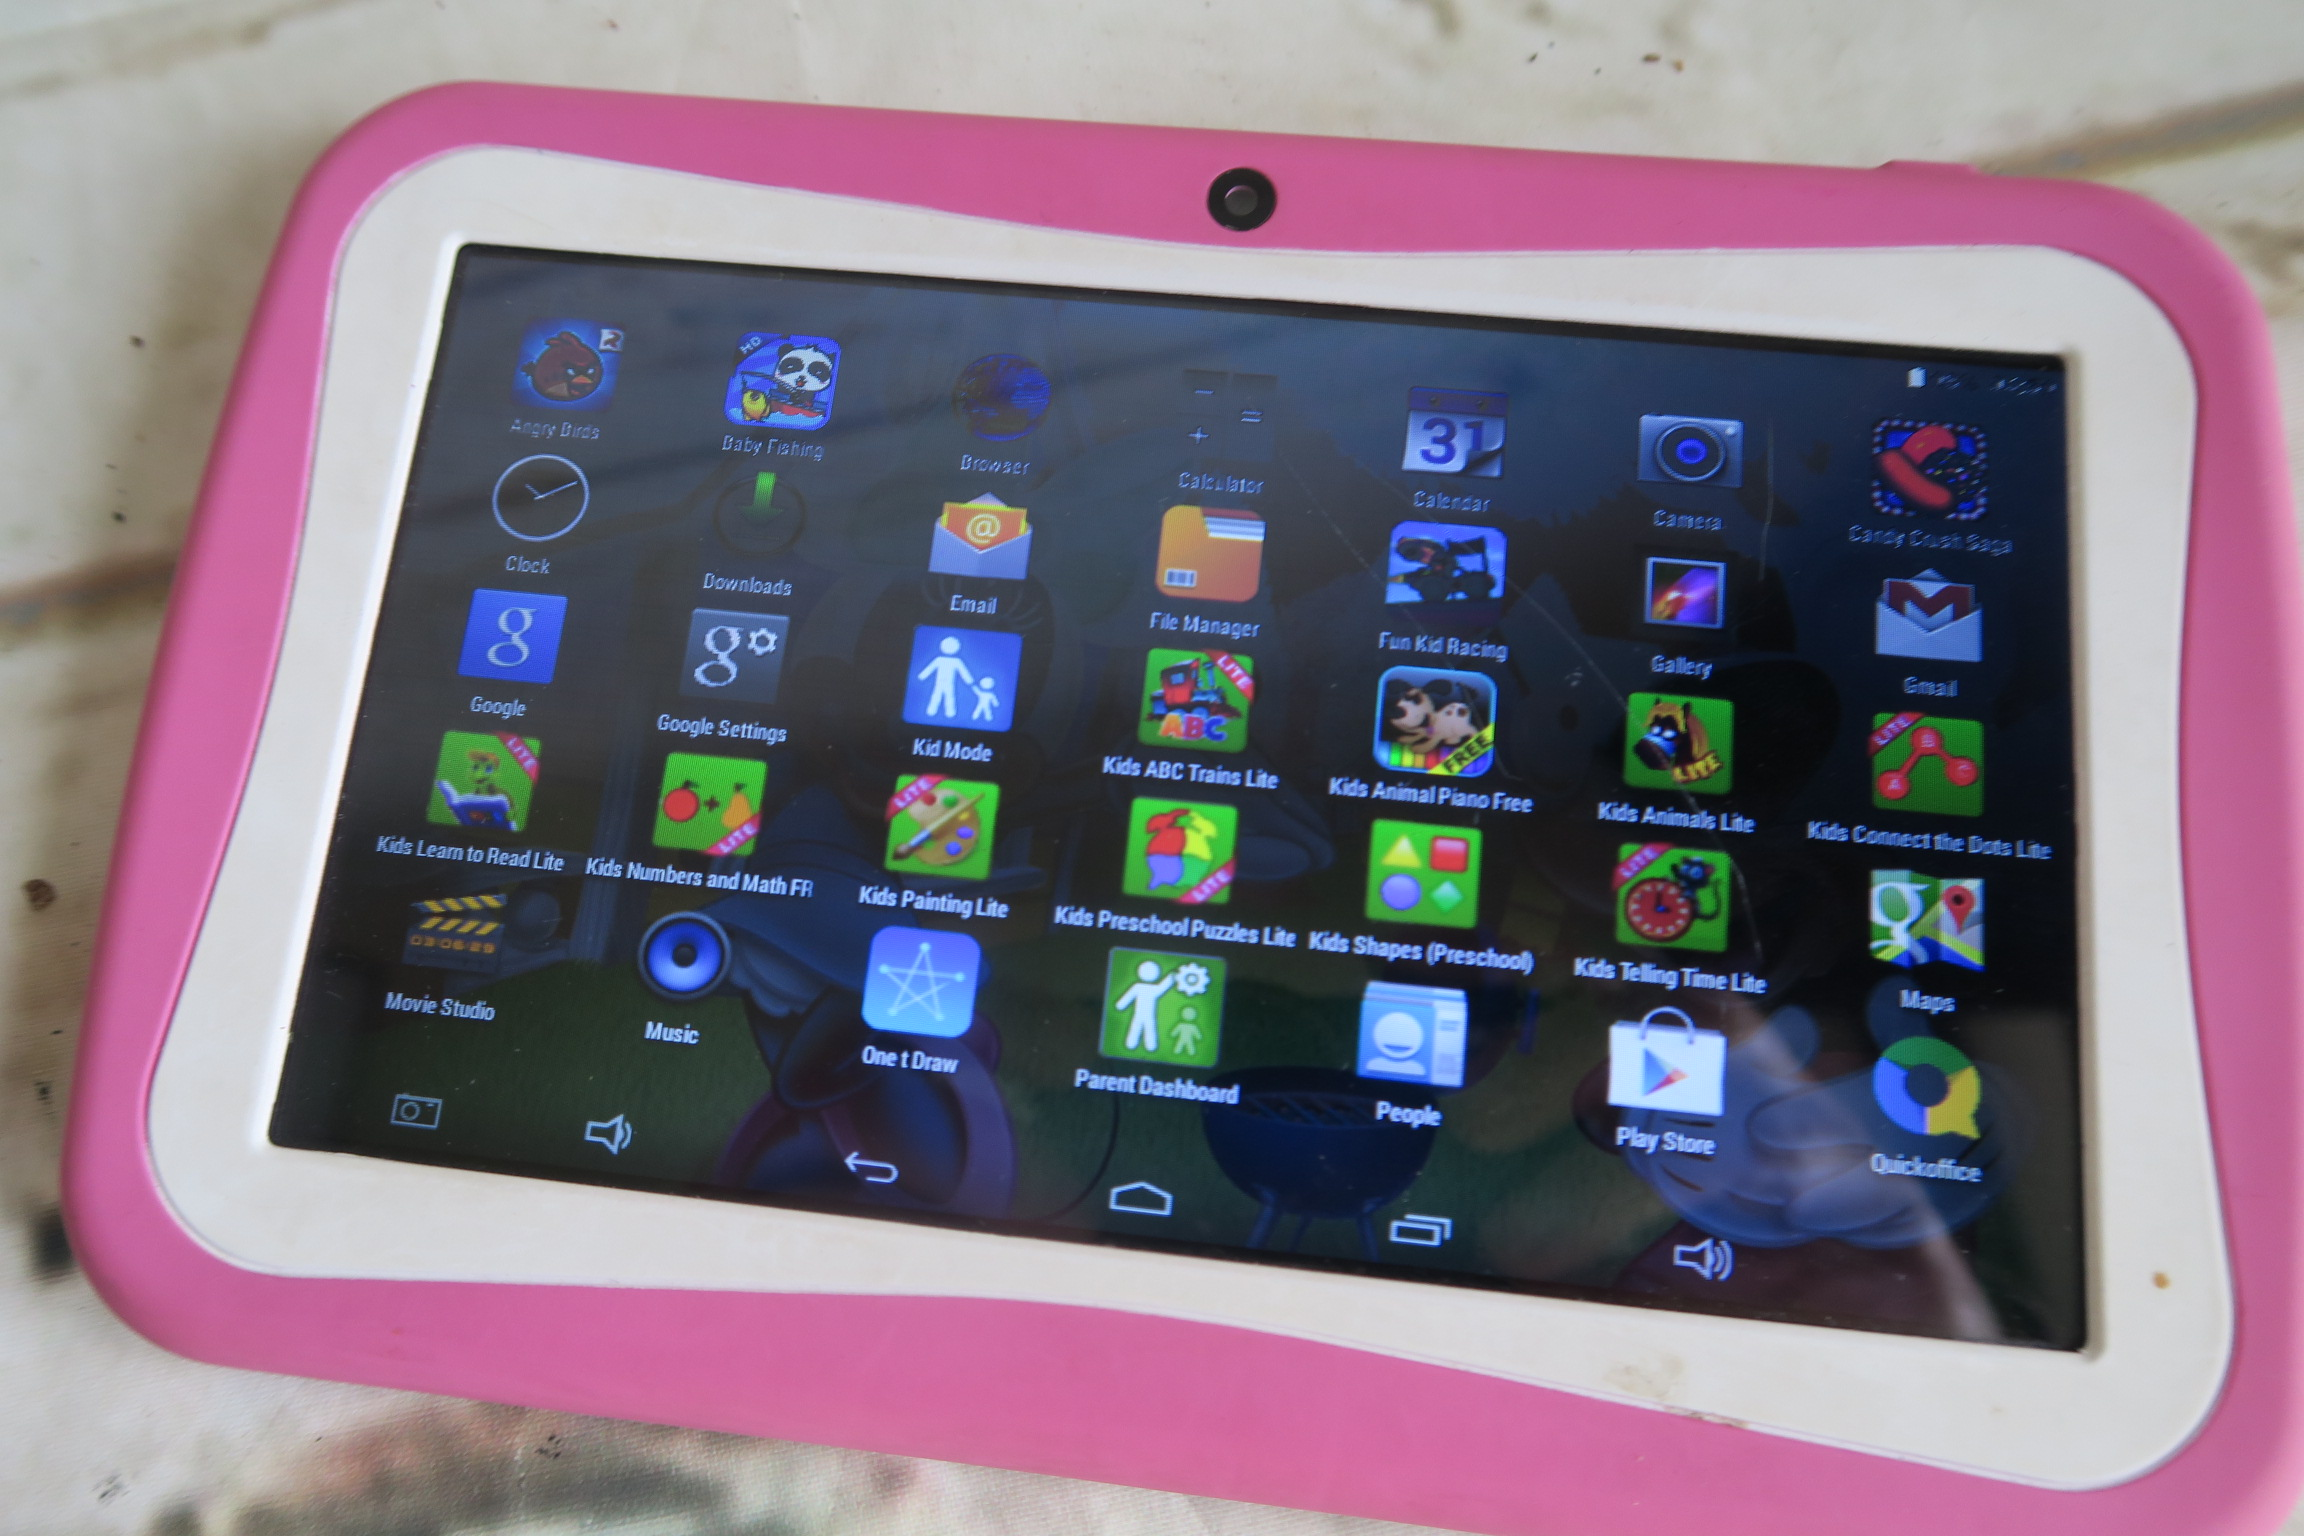 Roze Kinder Tablet.Beneve M755 Kinder Roze Tablet Android 4 4 2